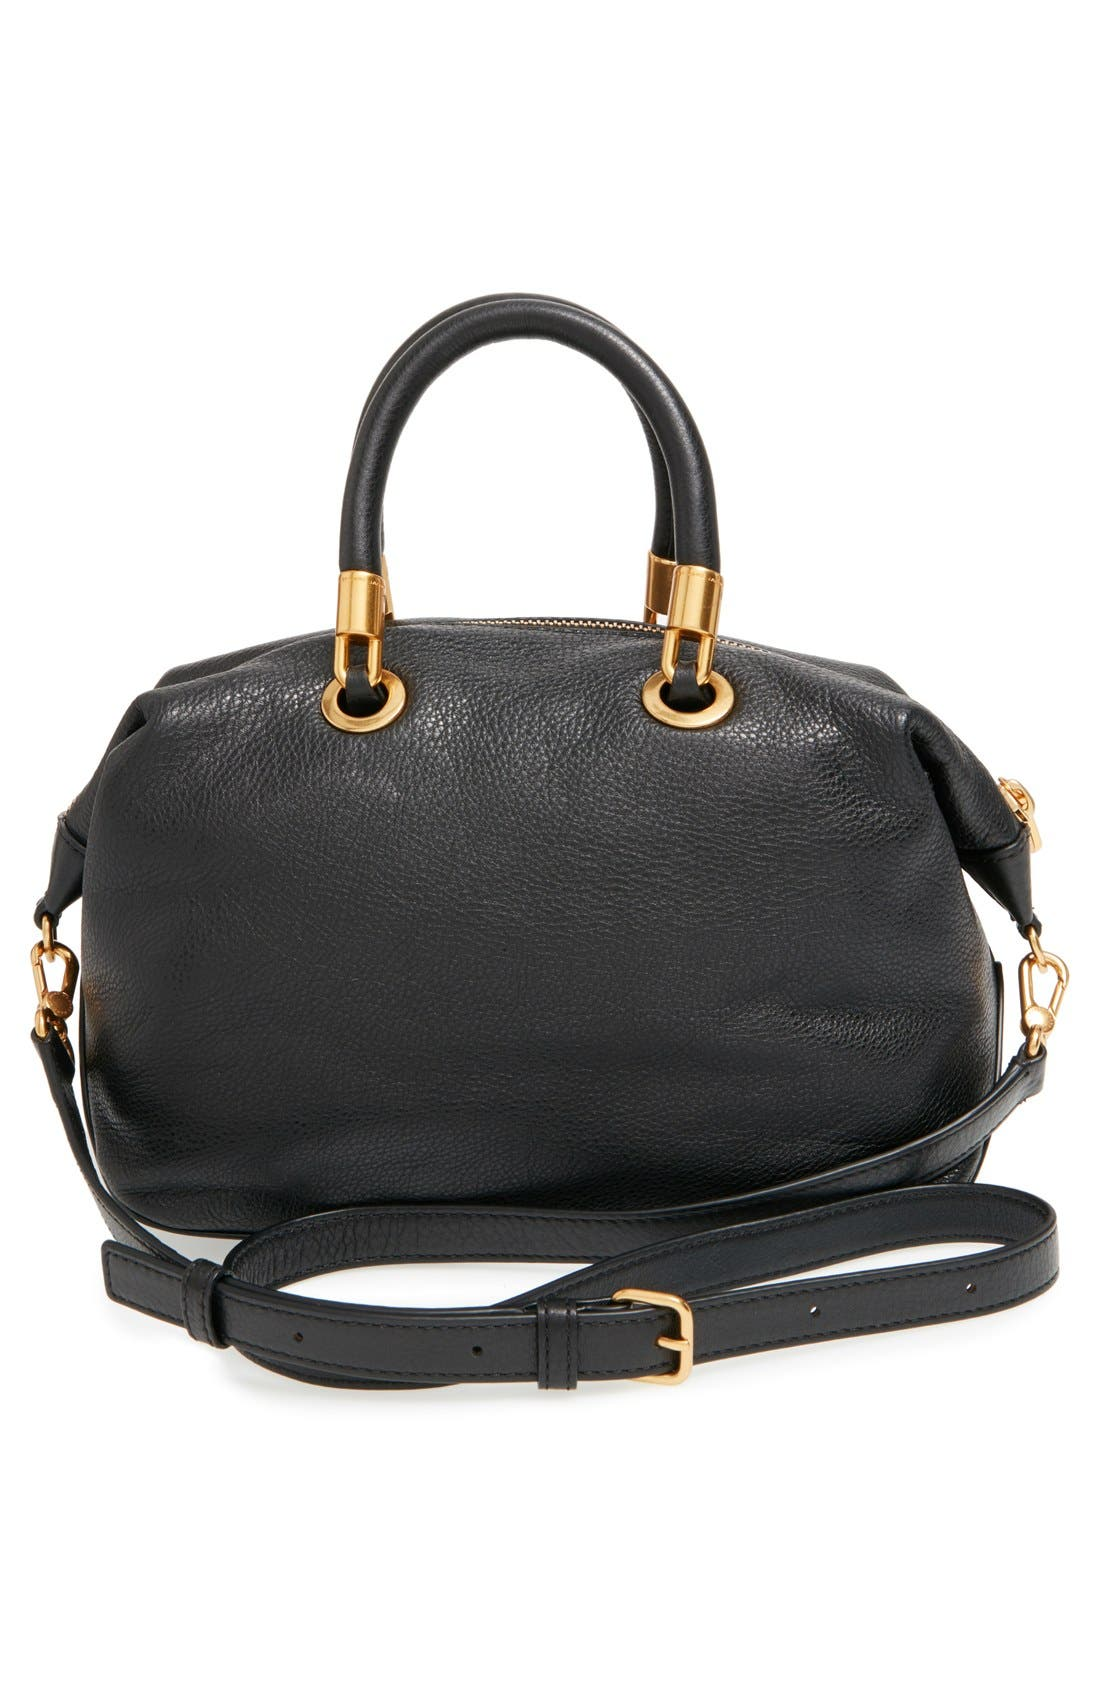 MARC JACOBS, MARC BY MARC JACOBS 'New Too Hot to Handle' Leather Satchel, Alternate thumbnail 6, color, 001